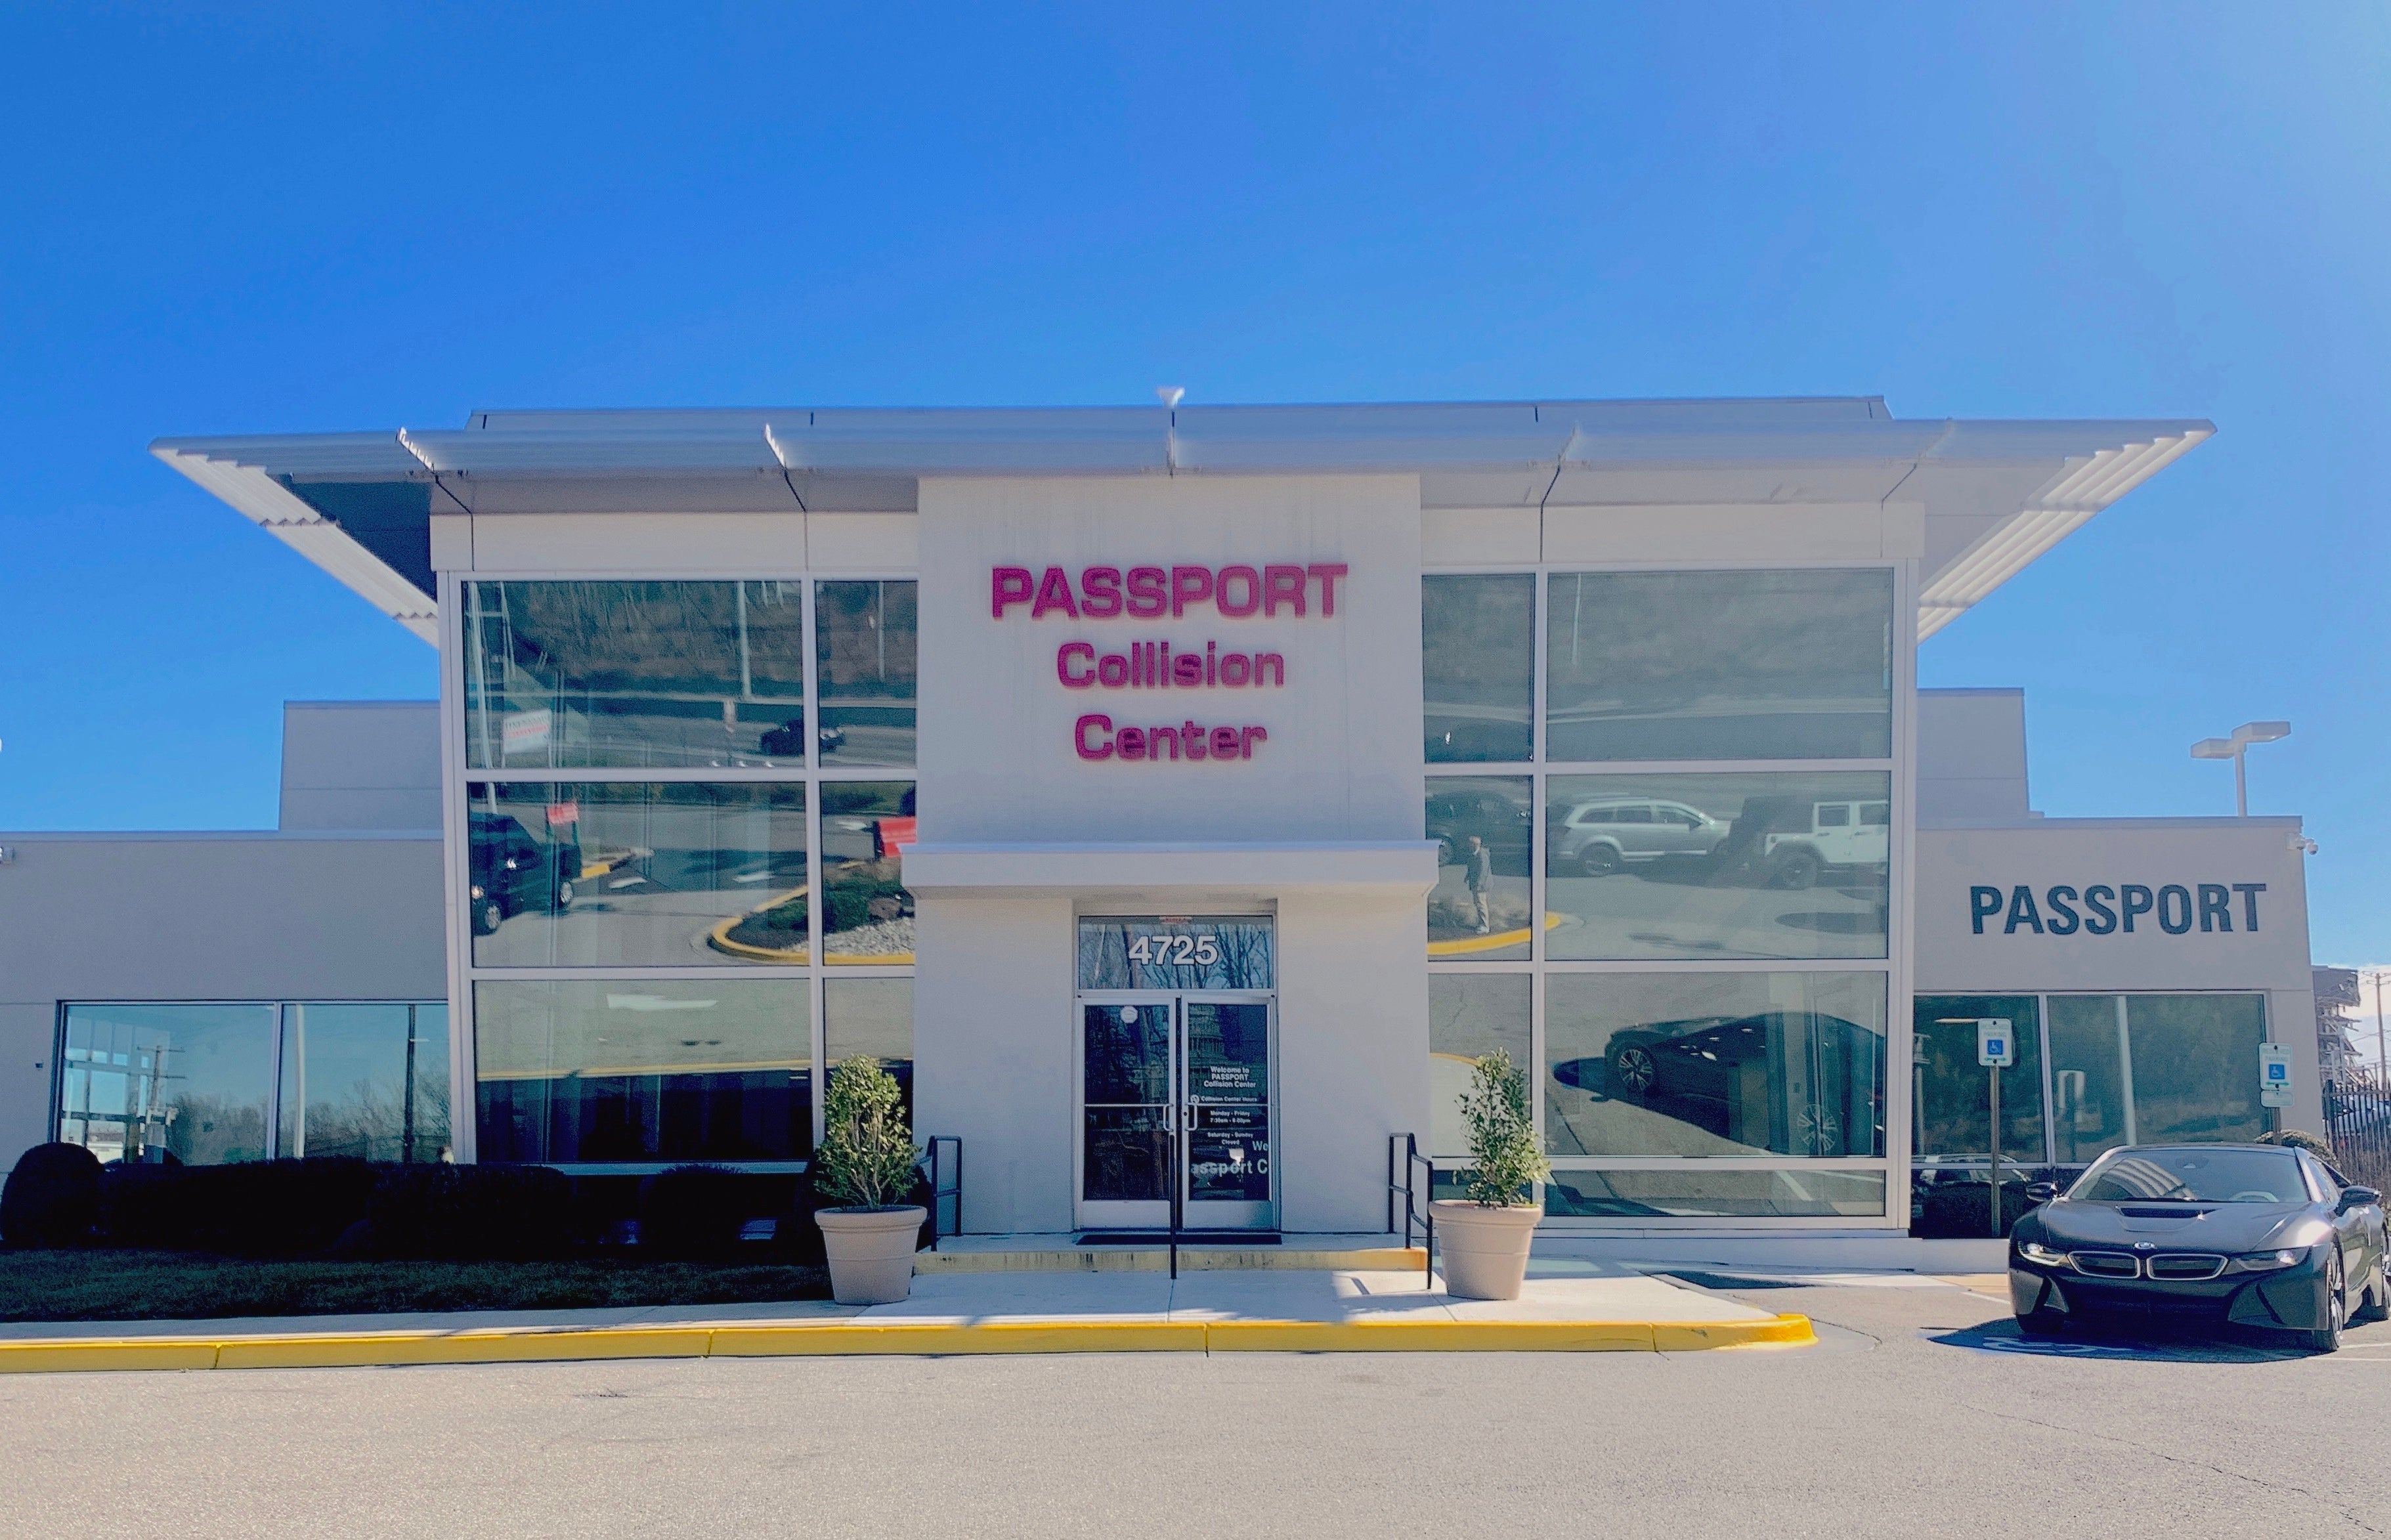 passport collision center in suitland md passport collision center in suitland md